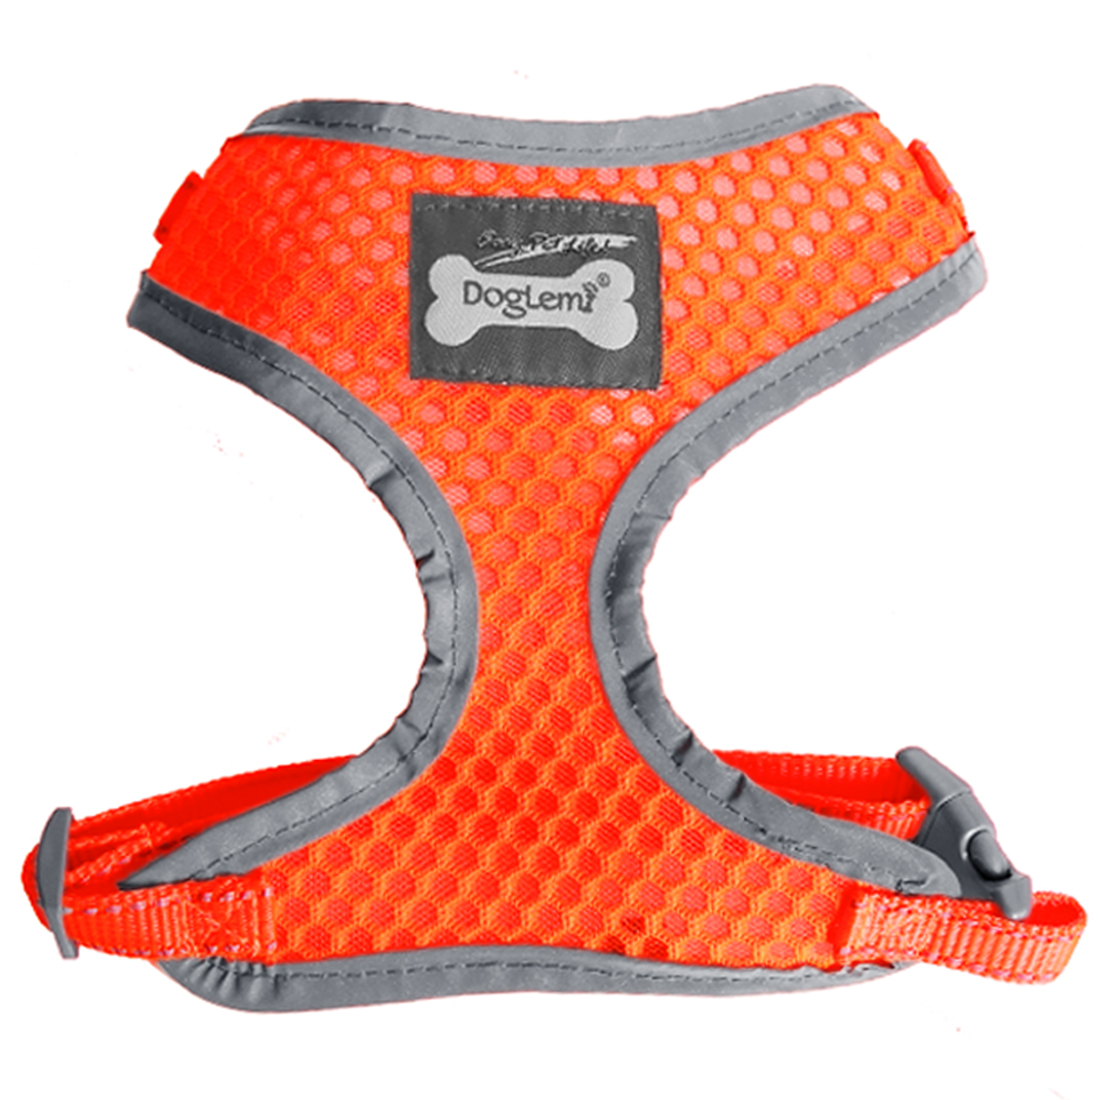 Comfort Control Dog Harness Adjustable Breathable Soft Air Mesh Puppy Harnesses Walk Collar Reflective Vest Orange XL